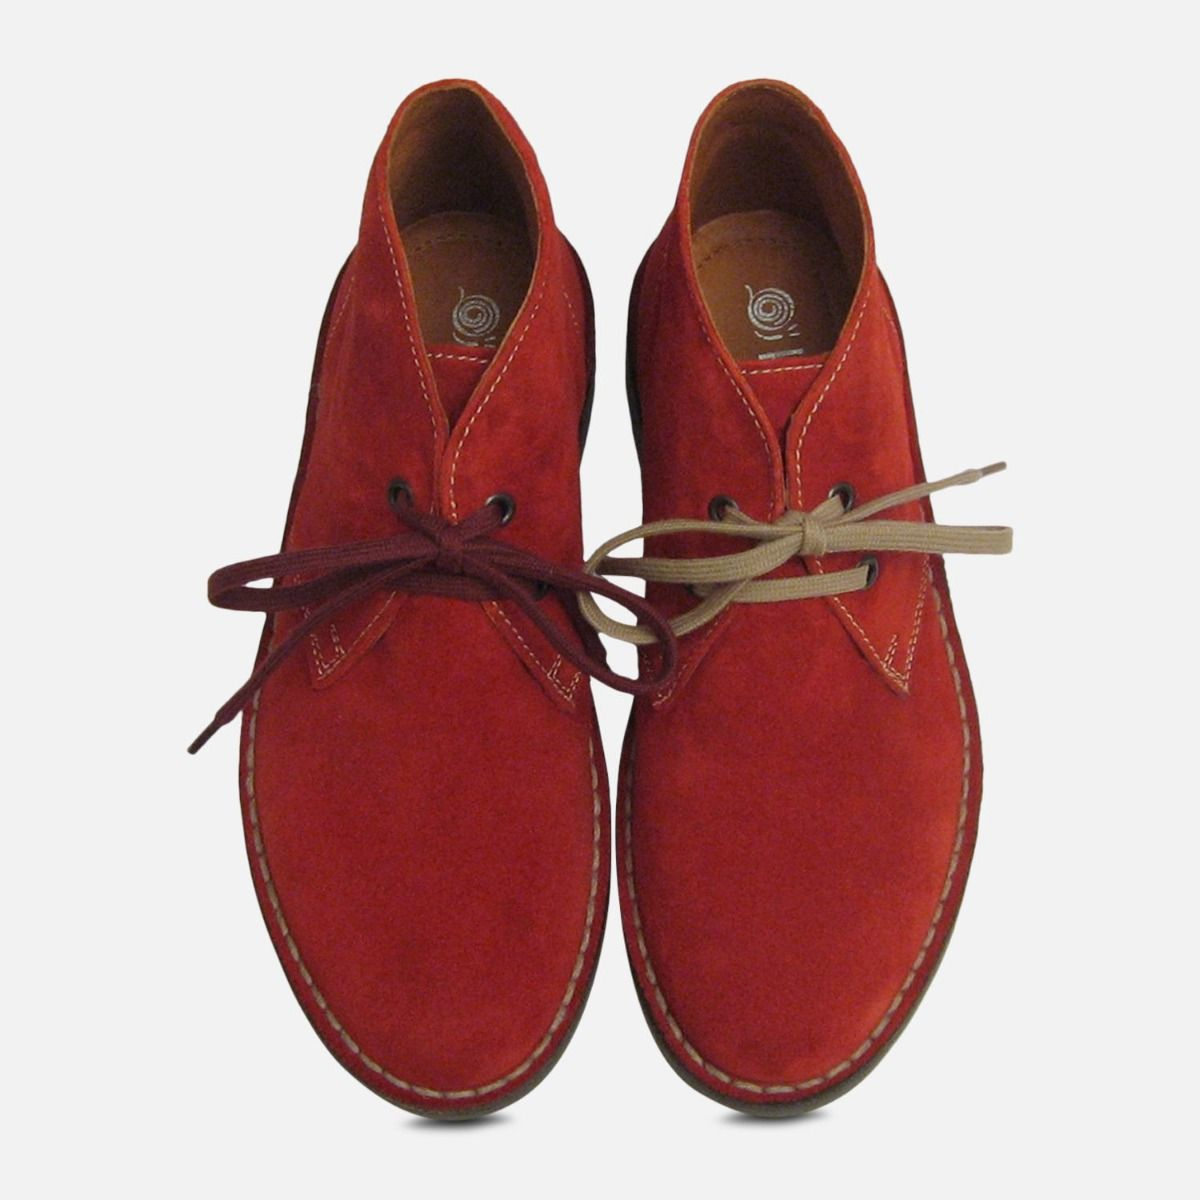 Womens Scarlet Red Suede Italian Desert Boots